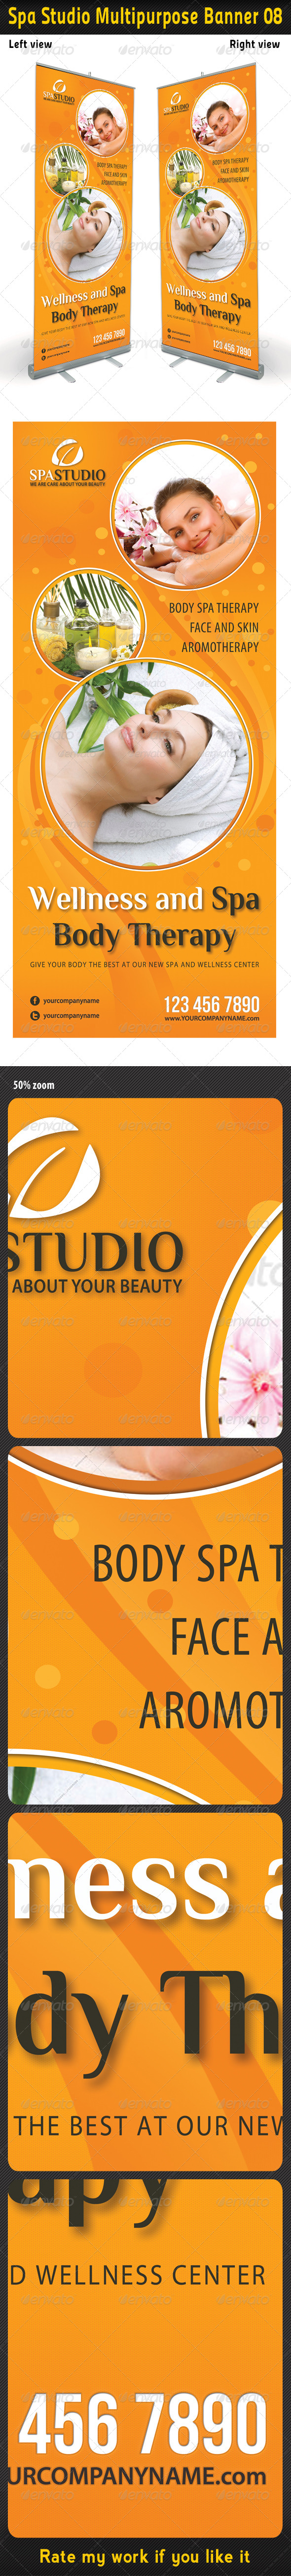 Spa Studio Multipurpose Banner 08 - Signage Print Templates